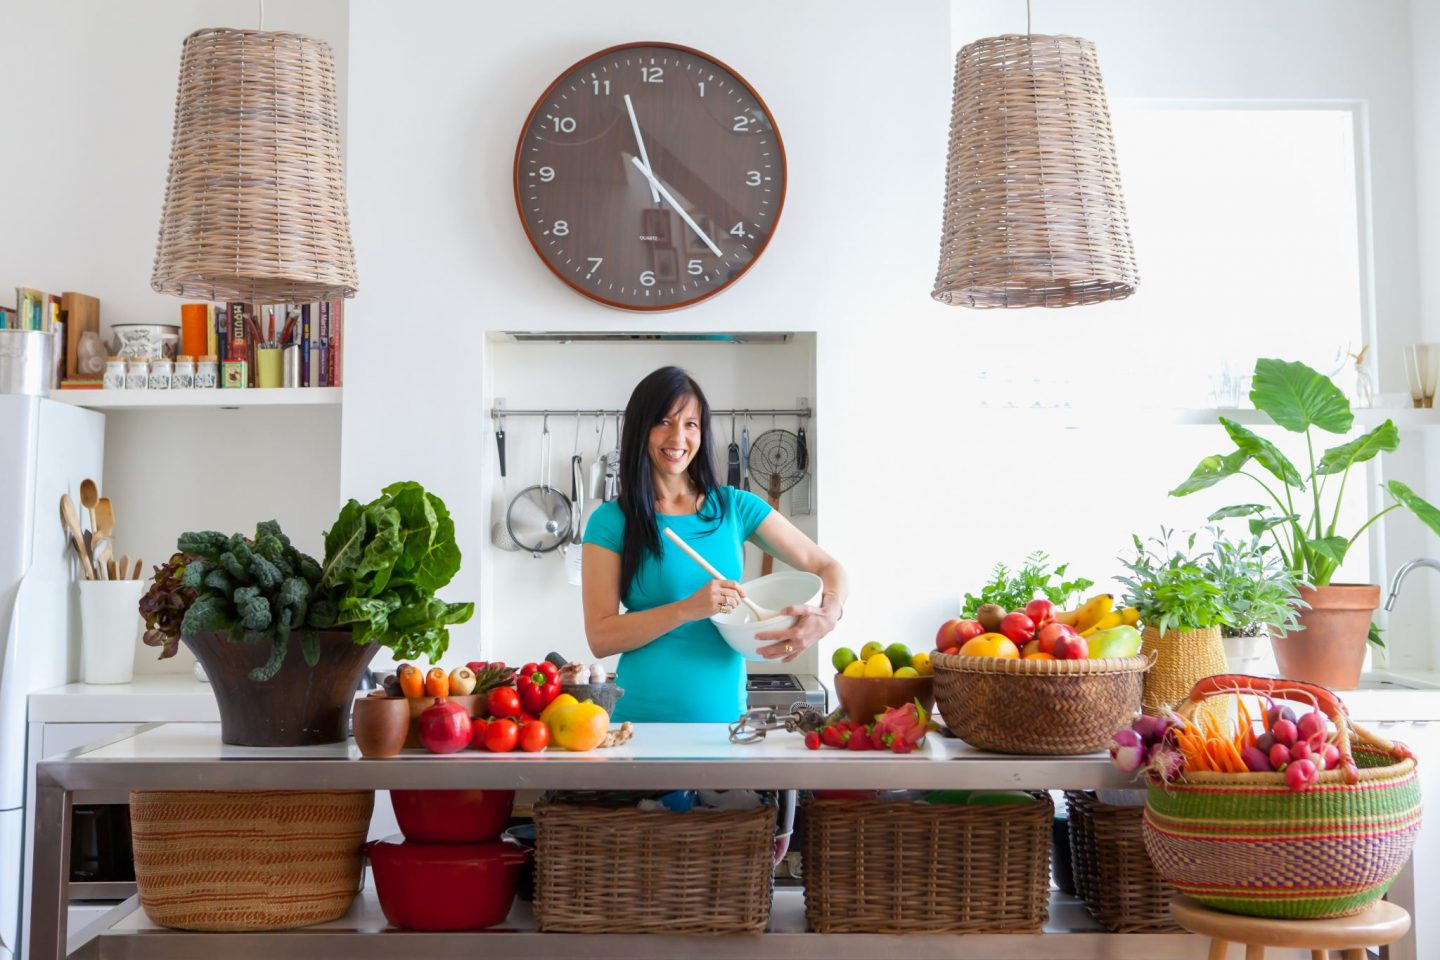 Interview: Cinzia Cozzolino, Nutritionist + Creator of The Smoothie Bombs